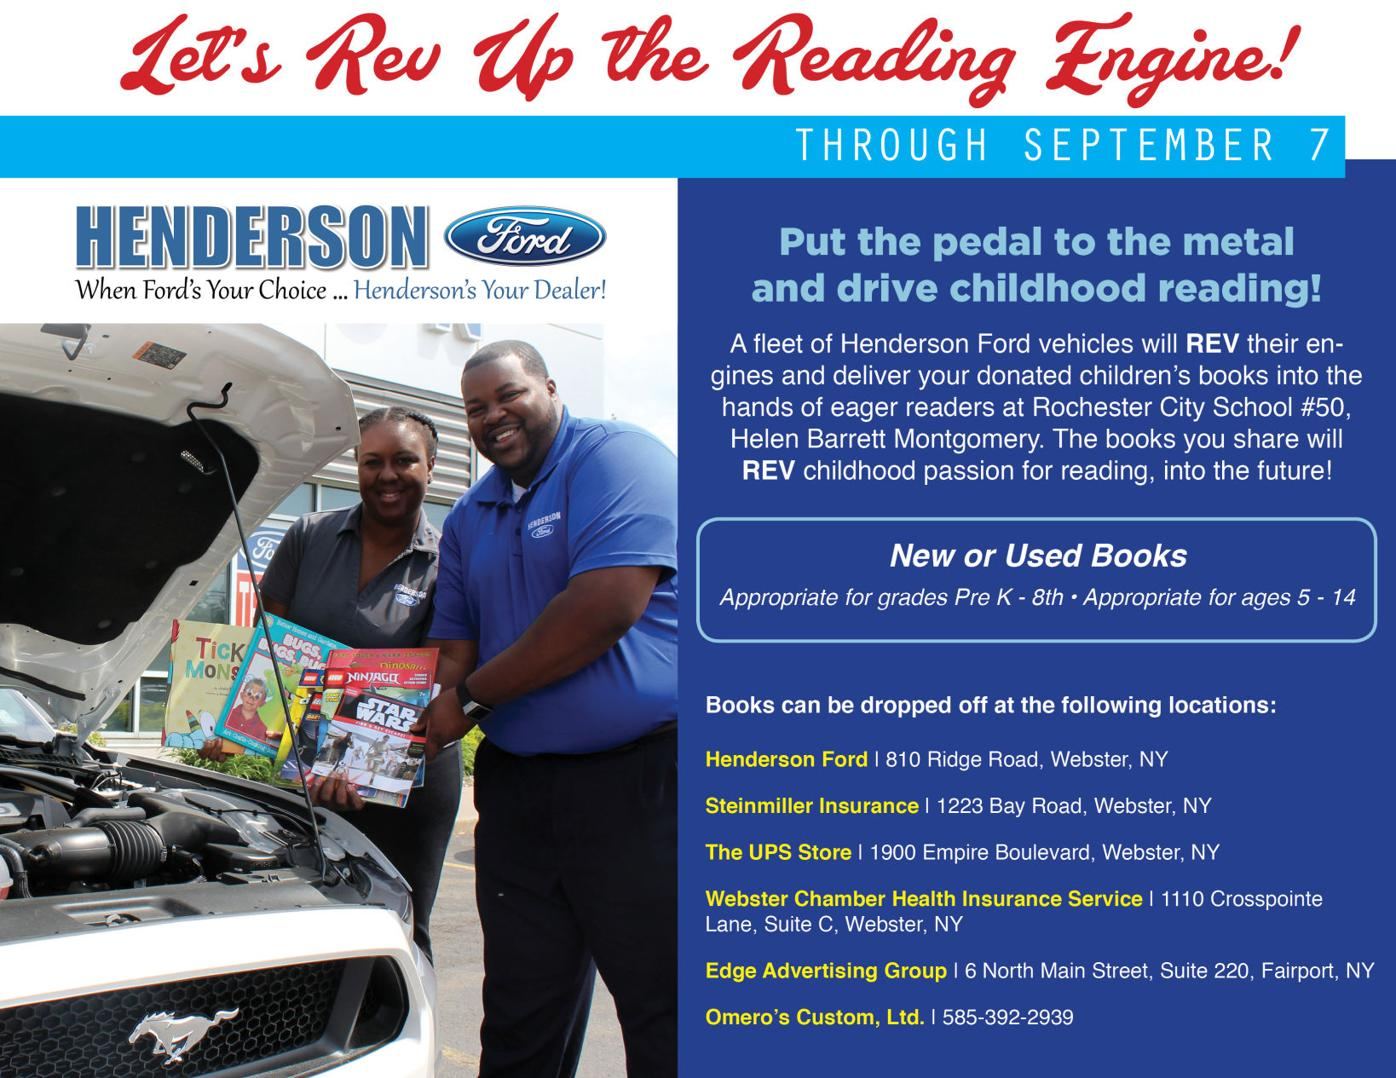 Henderson Ford Book Drive ~ Last Two Weeks!